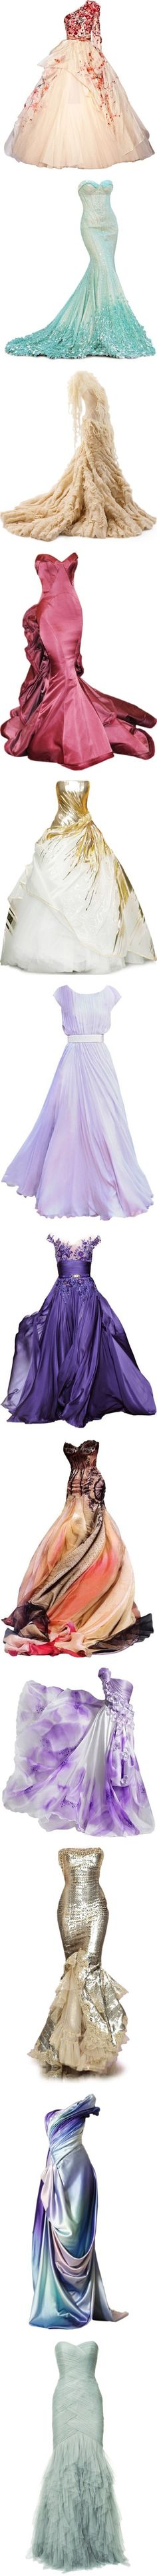 """Long Dresses"" by anime8 ❤ --Beaitiful gowns. I love the first floral gown & the beautiful eighth purple gown."